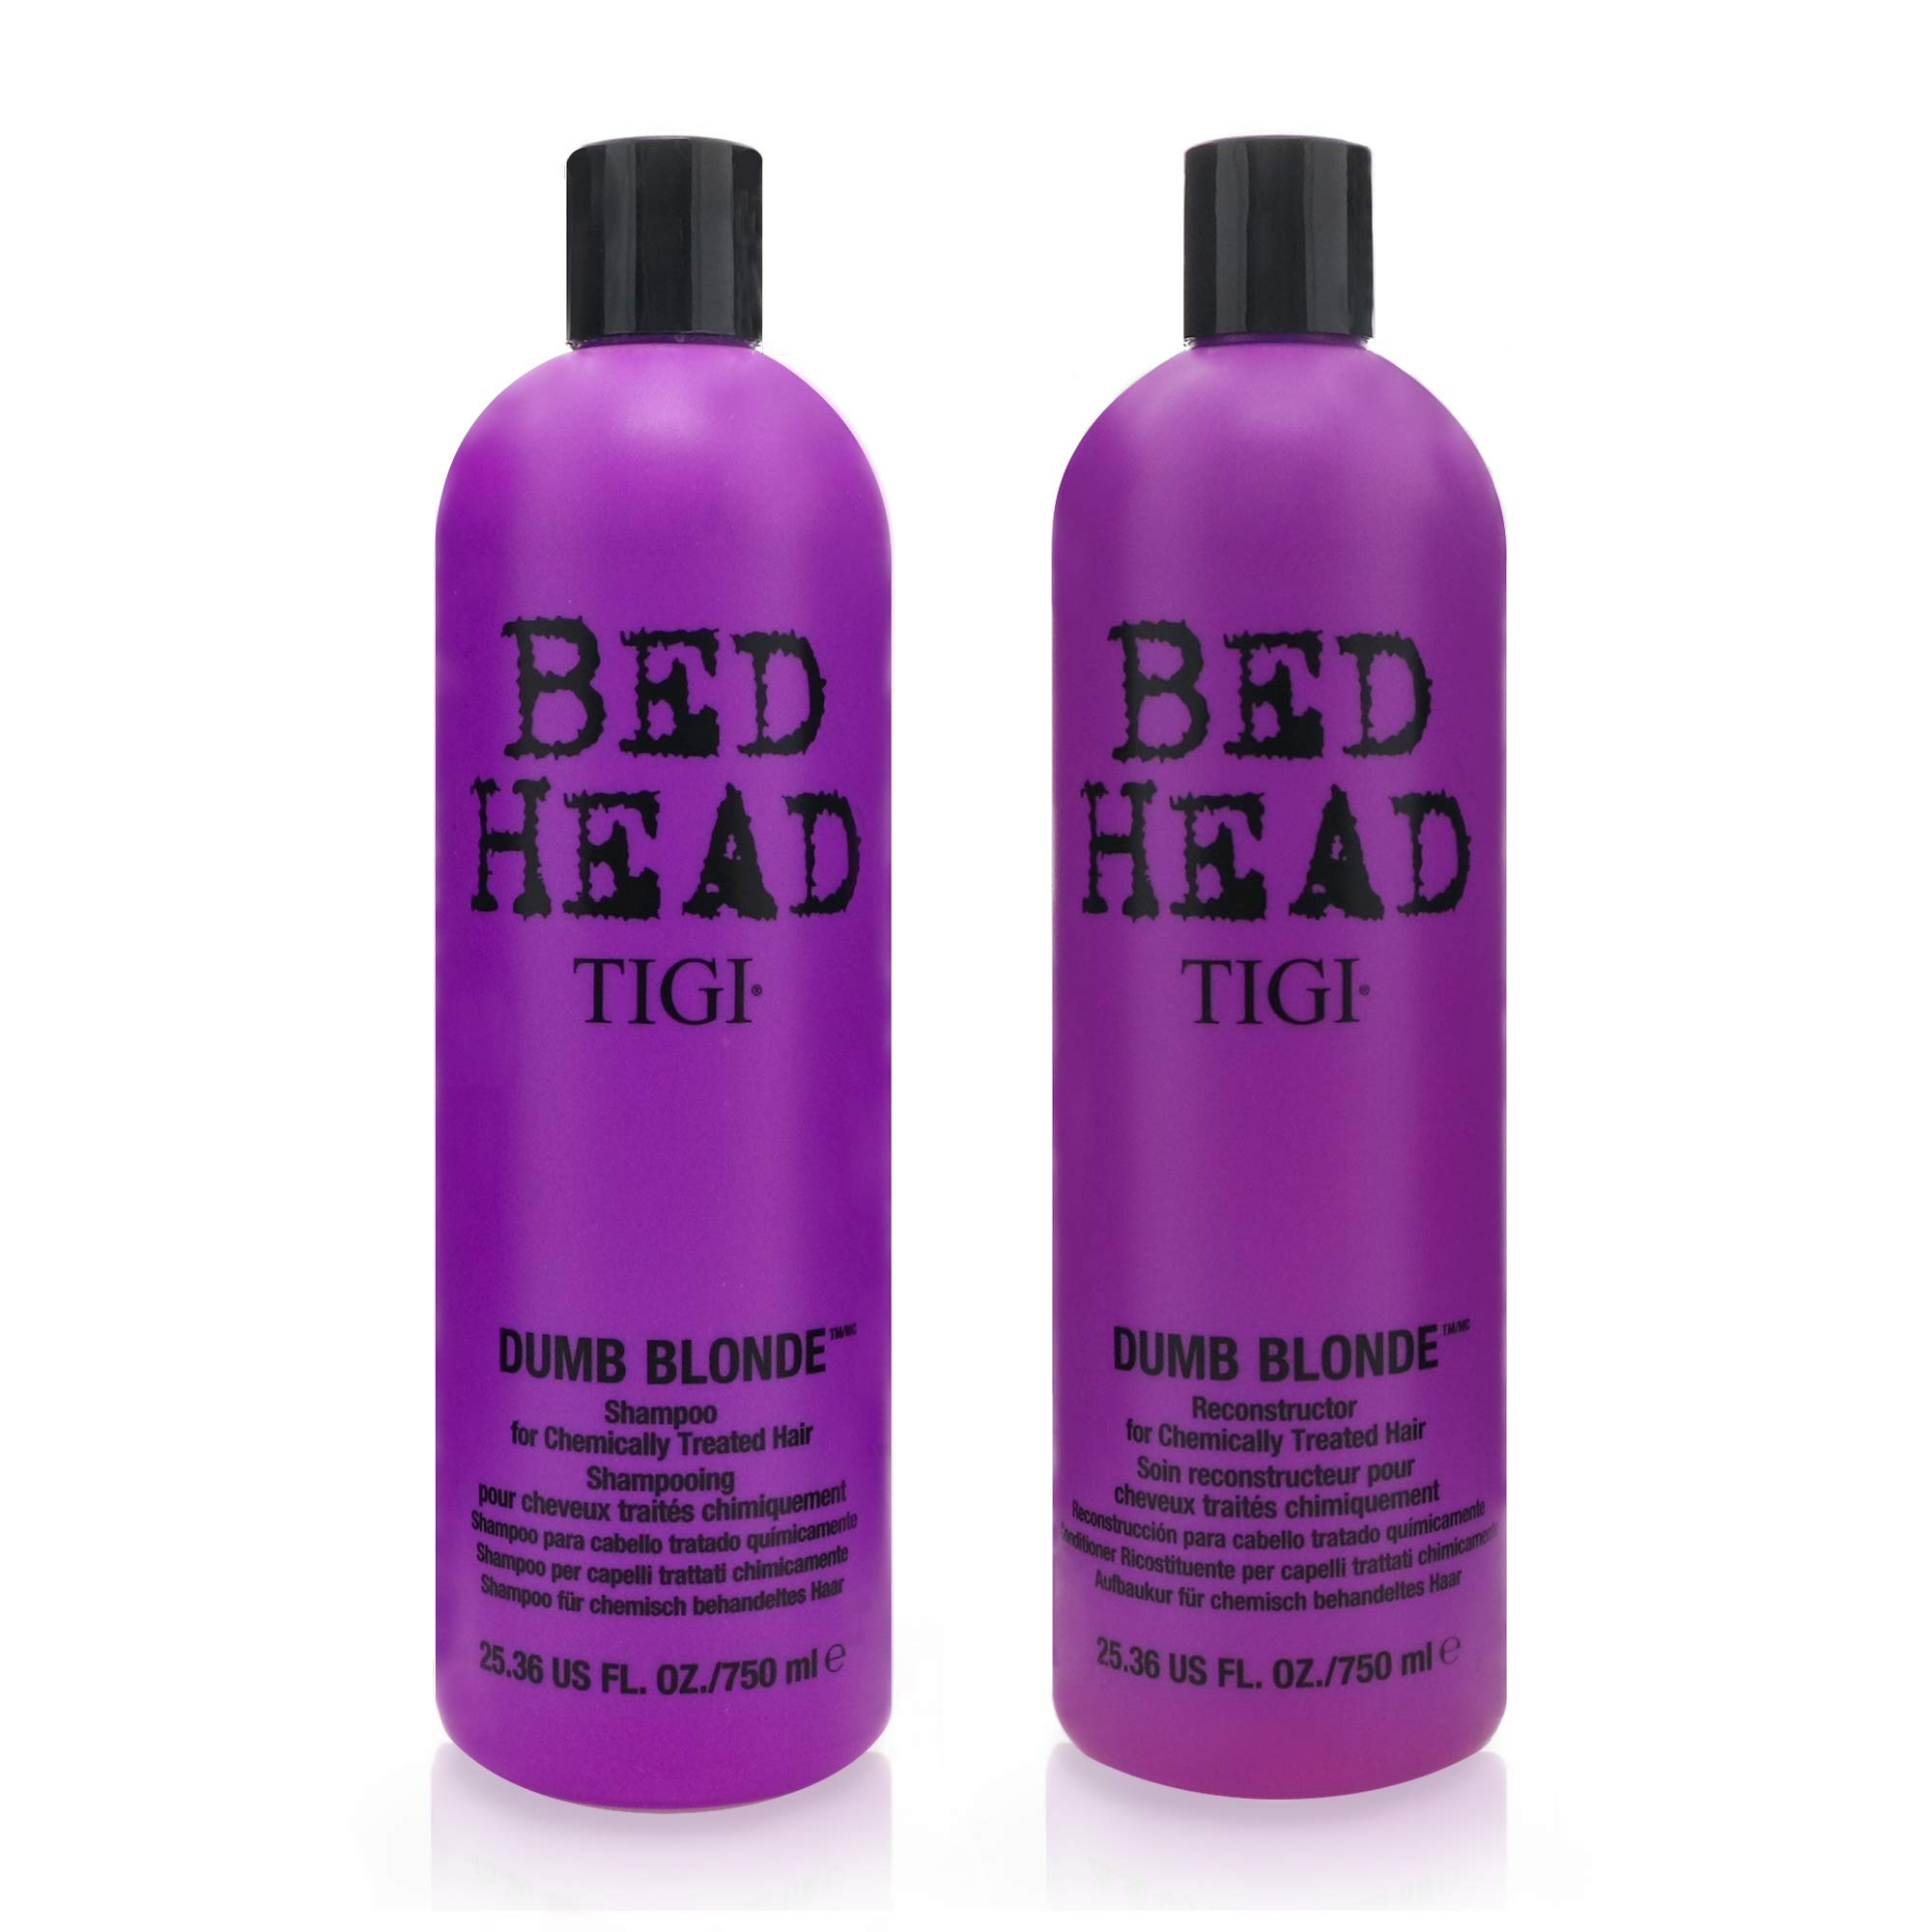 TIGI Bed Head Dumb Blonde Shampoo and Reconstructor Conditioner Duo - 25.36oz each by TIGI